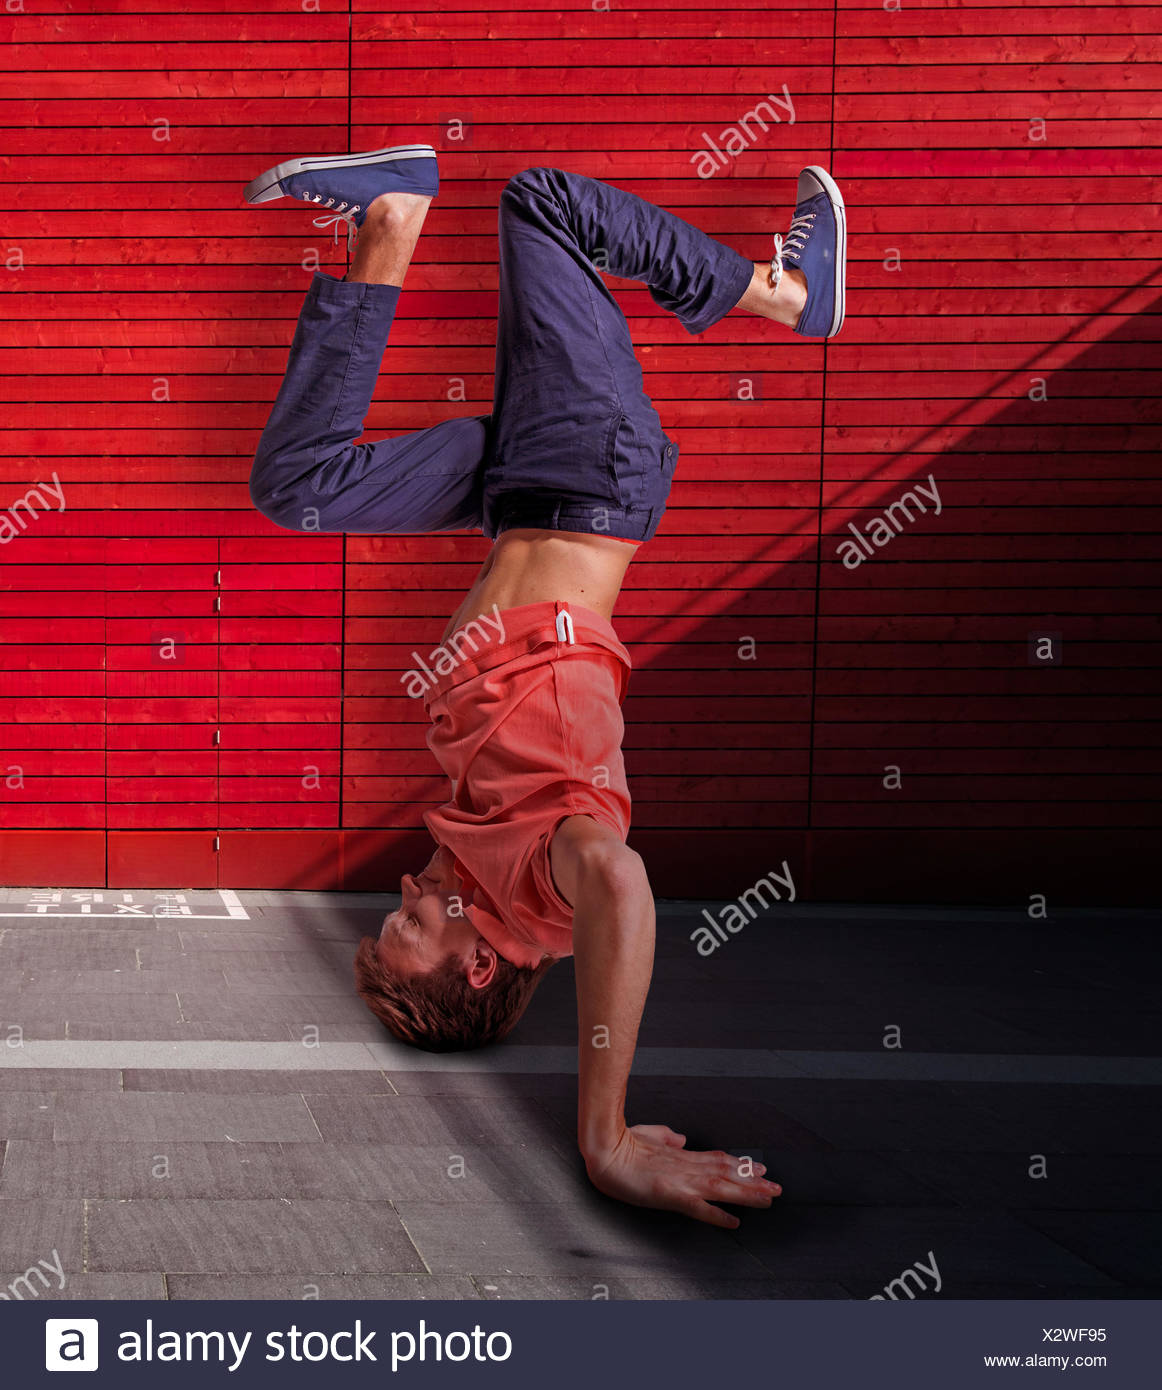 Break dancer doing handstand against red wall background - Stock Photo